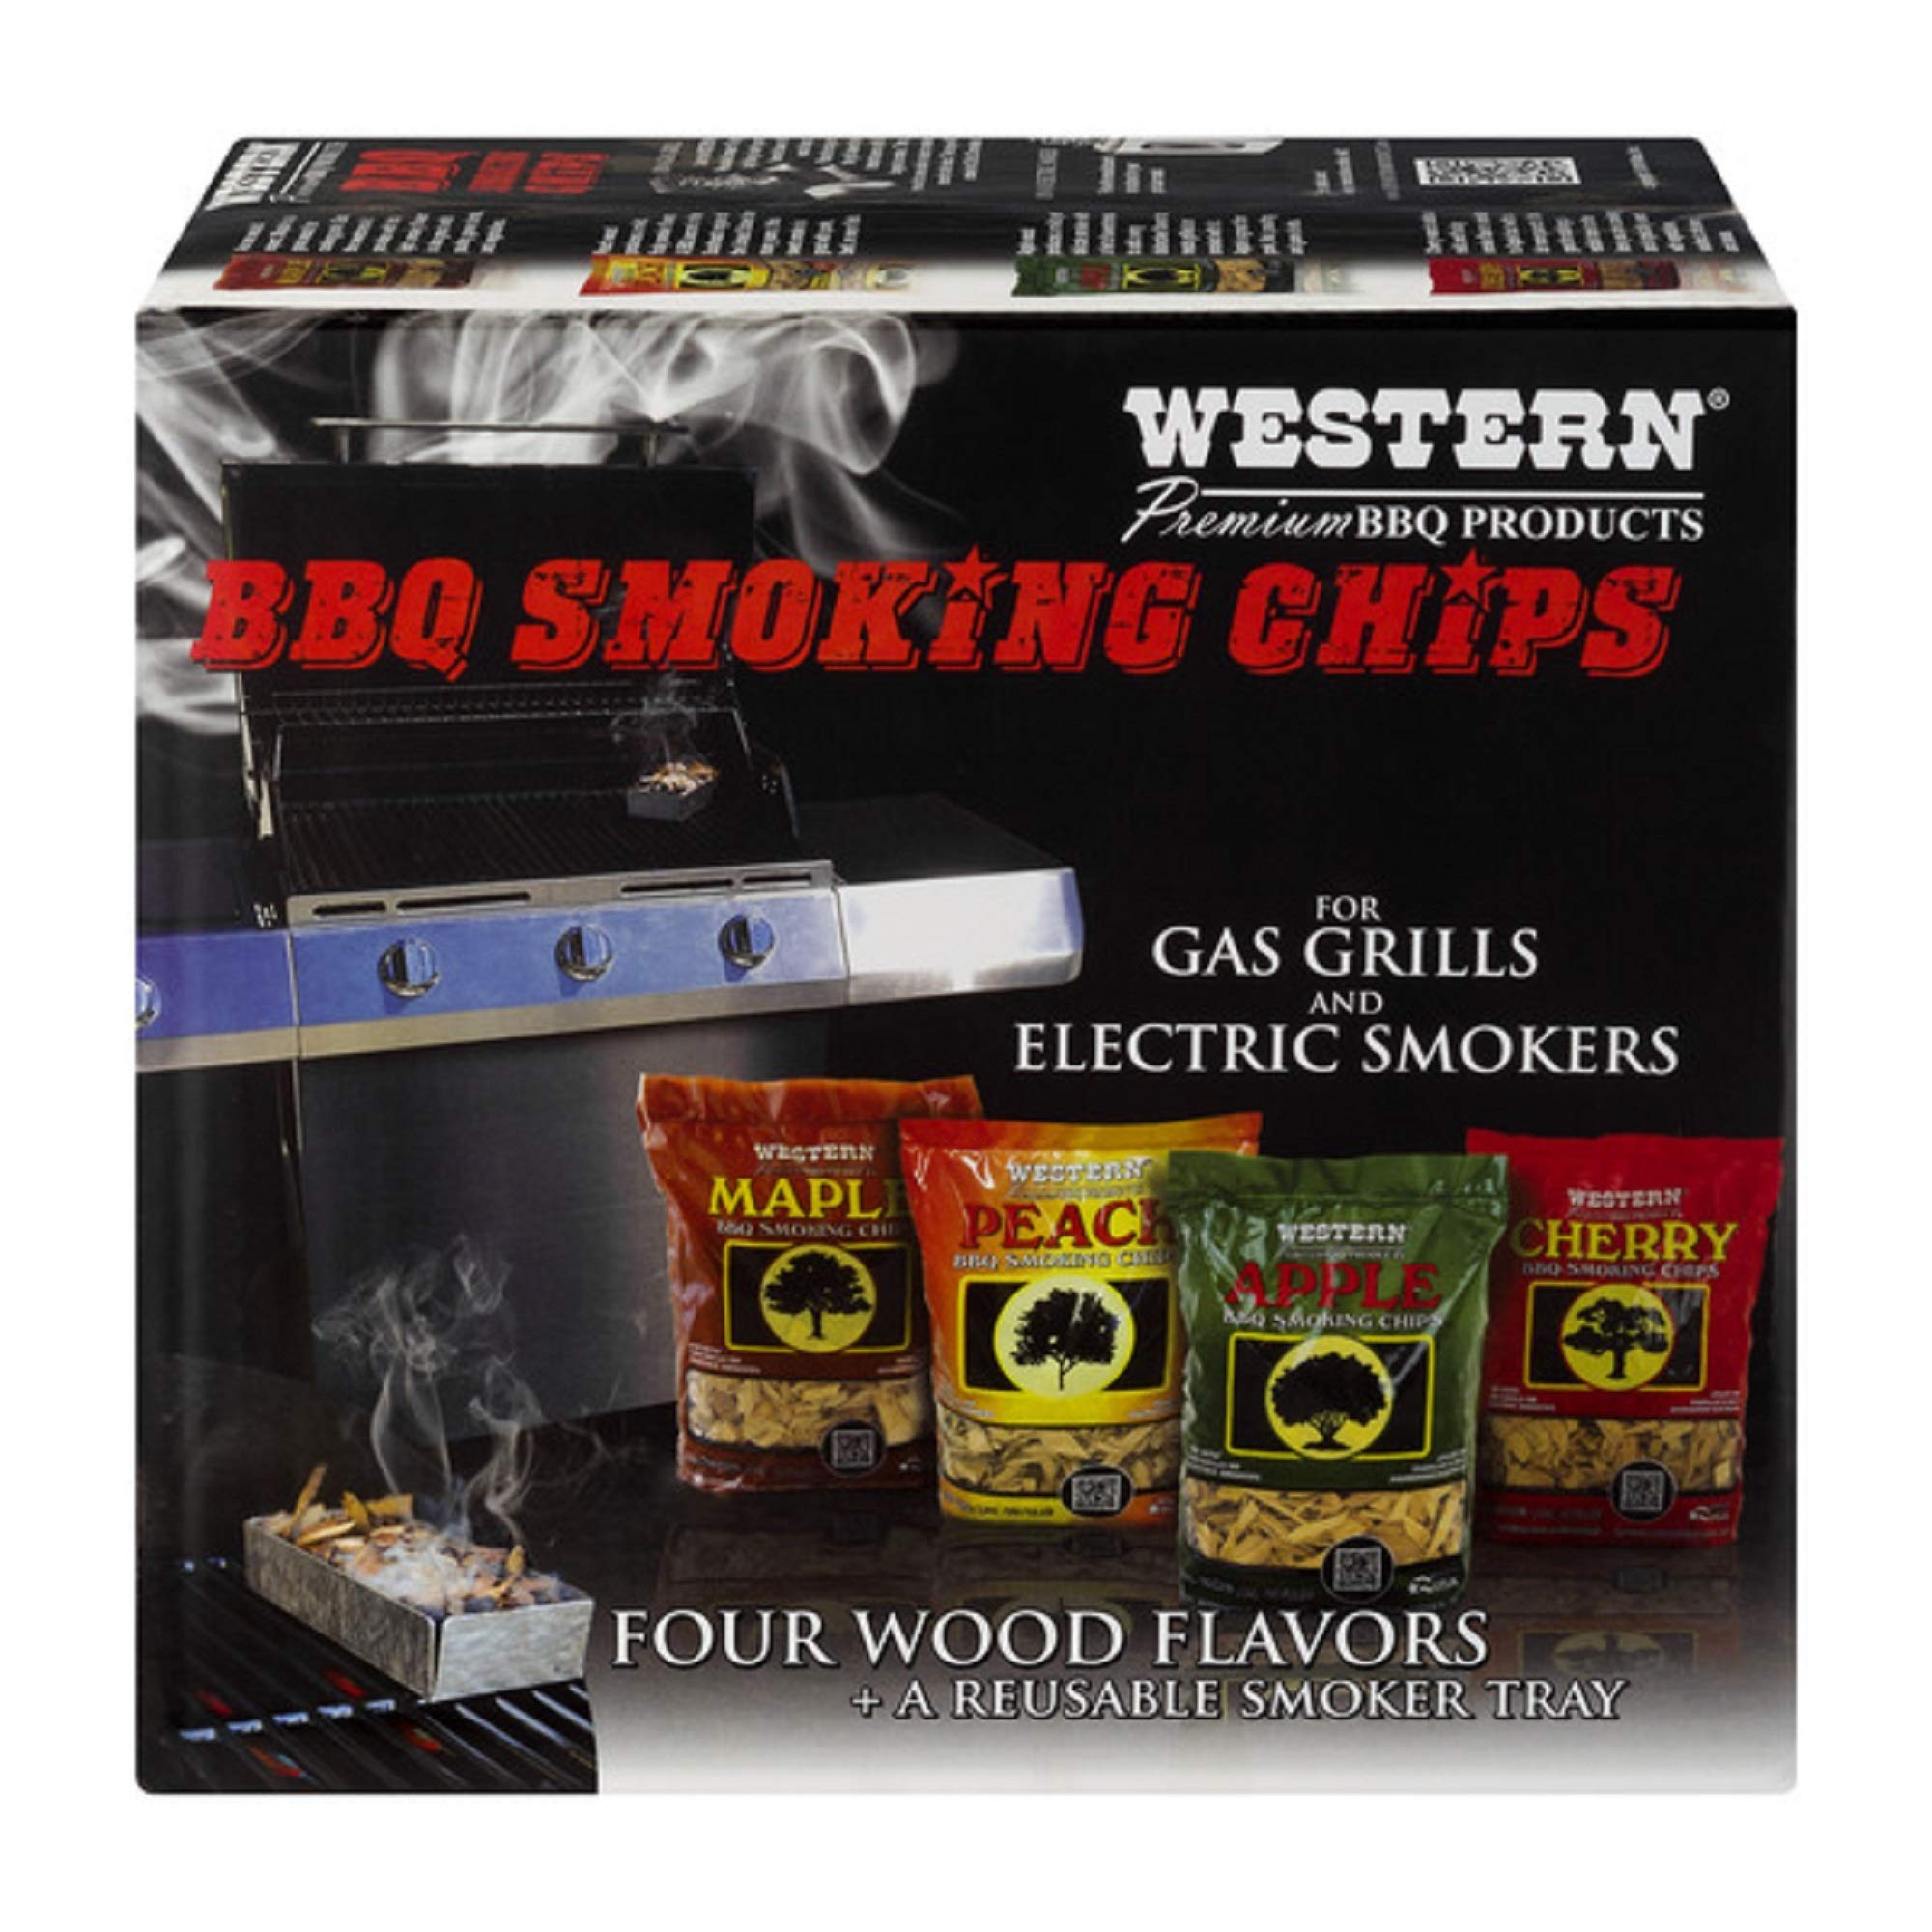 Western Premium BBQ Products BBQ Smoking Chips, Variety Pack (4 pack) product image